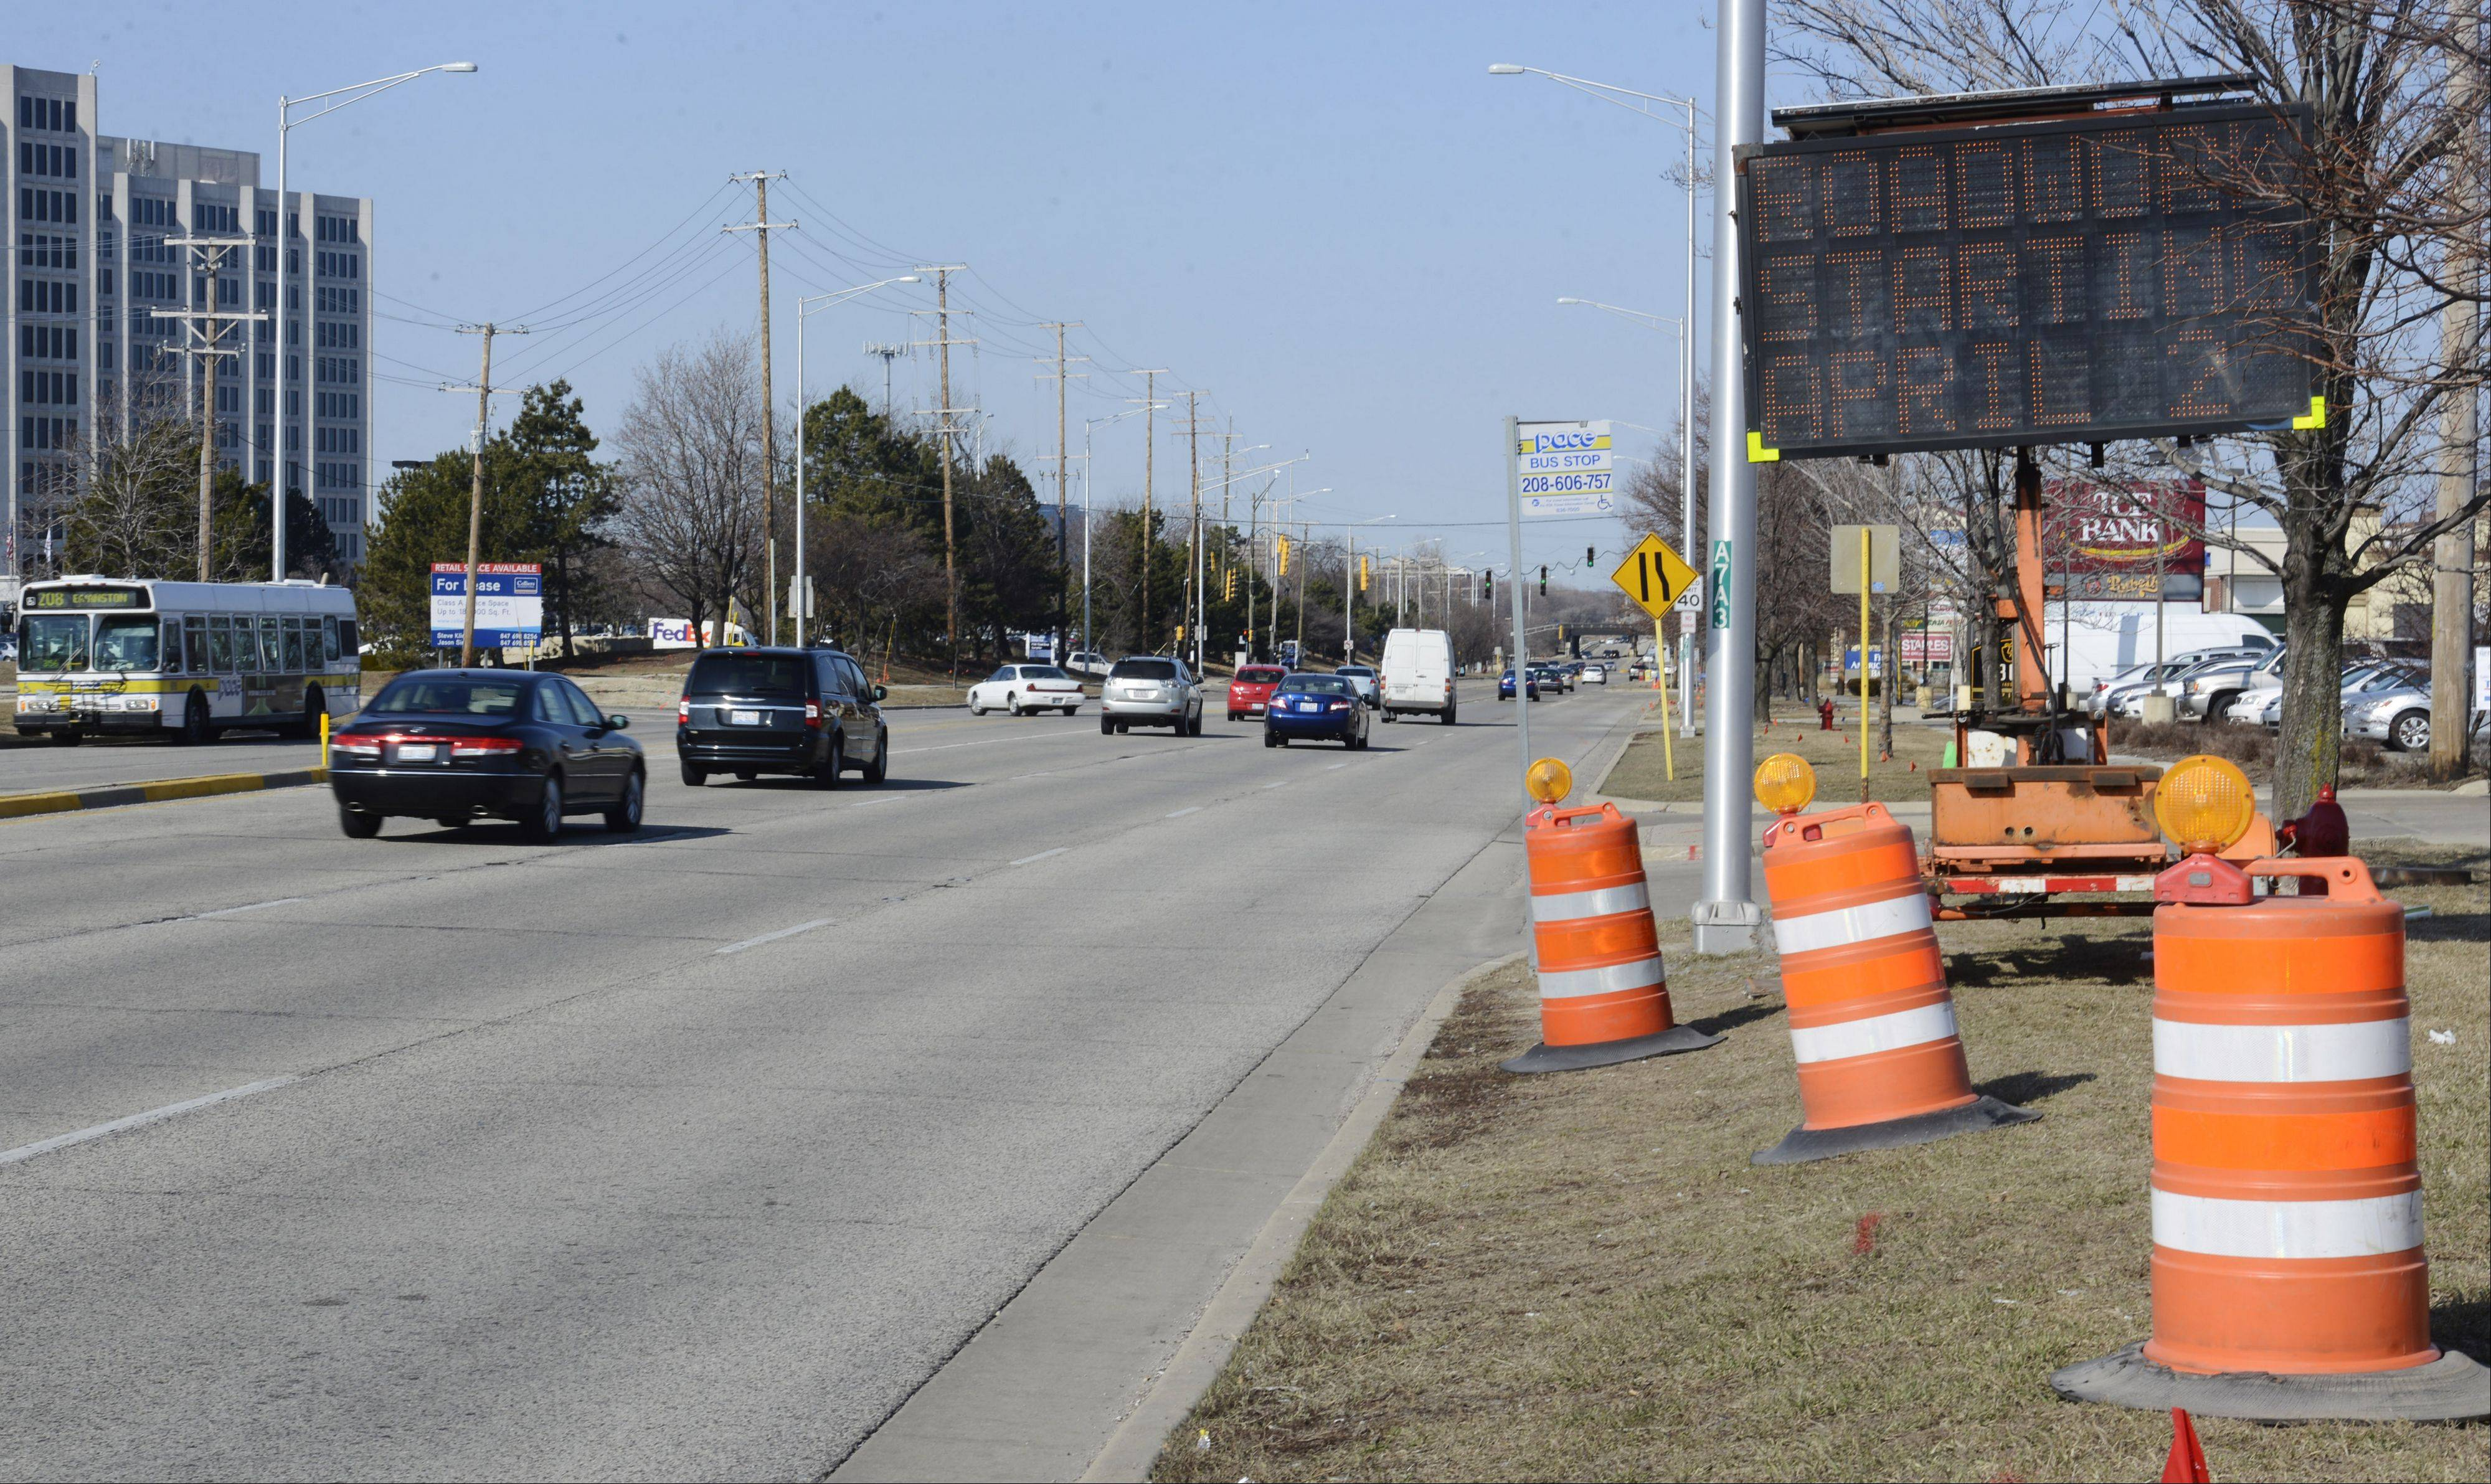 Road construction will begin this week in the area of Golf and New Wilke roads in Rolling Meadows. The work, expected to be mostly complete in November or December, will expand Golf to three lanes between Algonquin Road and the Jane Addams Tollway overpass.